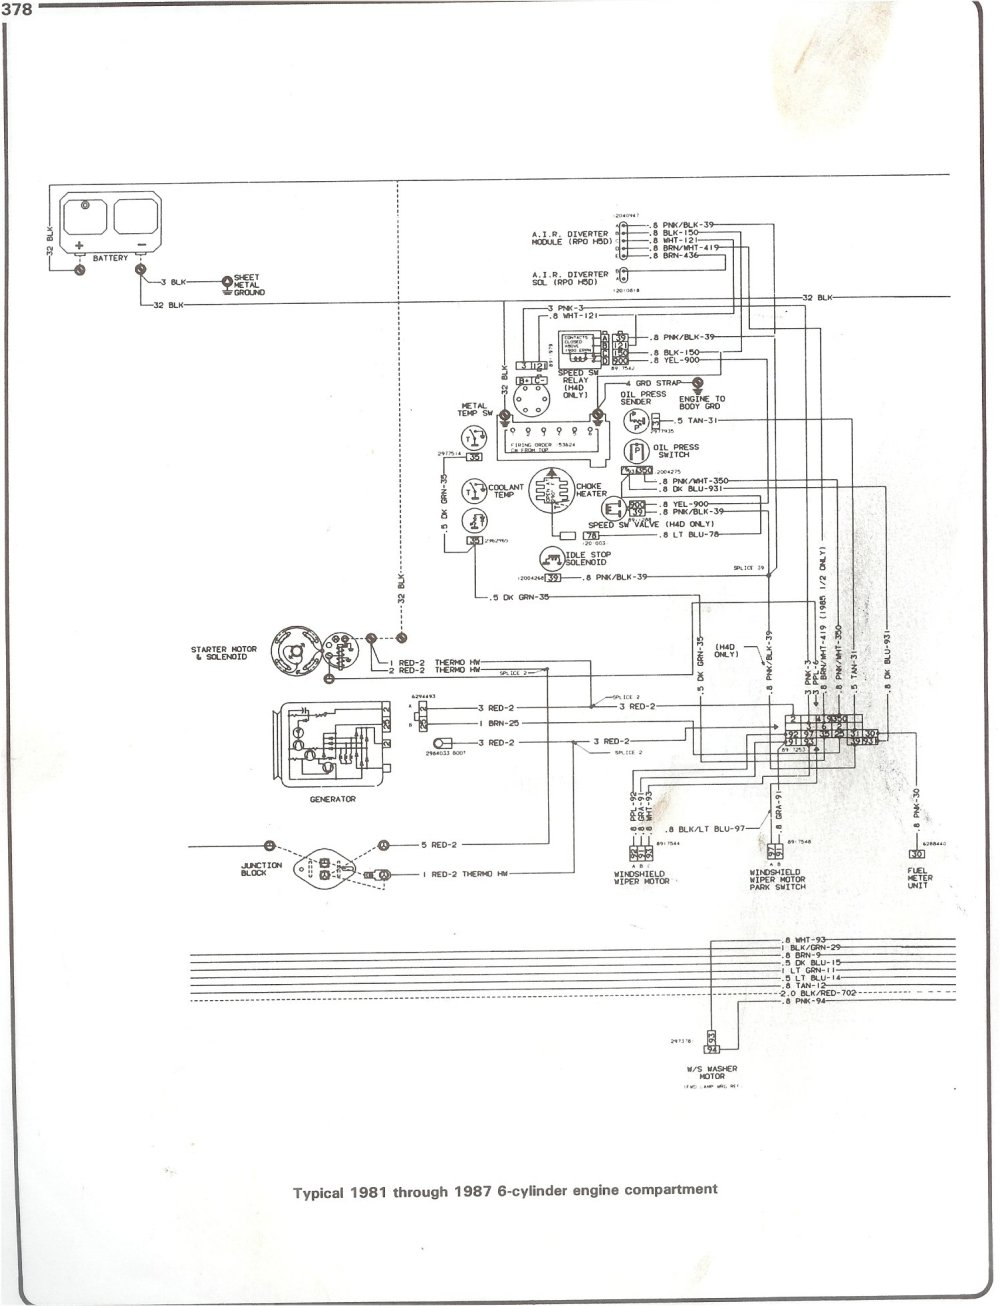 medium resolution of complete 73 87 wiring diagrams 1987 firebird wiring diagram 81 87 i6 engine compartment